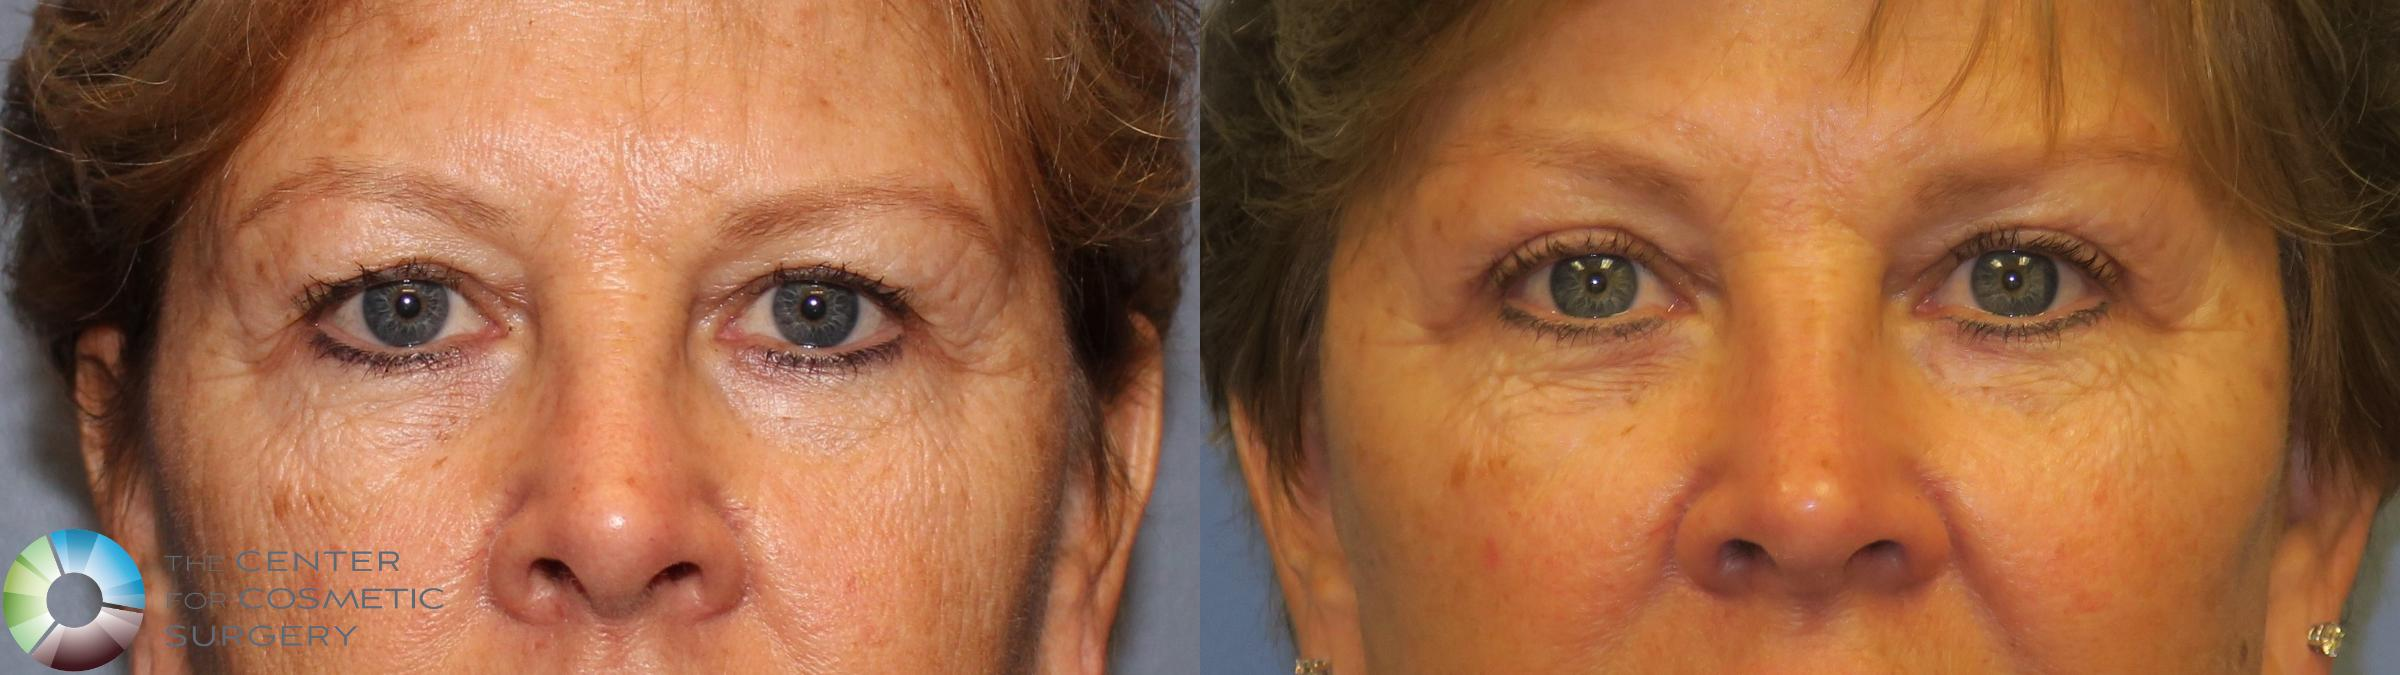 Mini Brow Lift Case 11486 Before & After brow eyes front | Golden, CO | The Center for Cosmetic Surgery